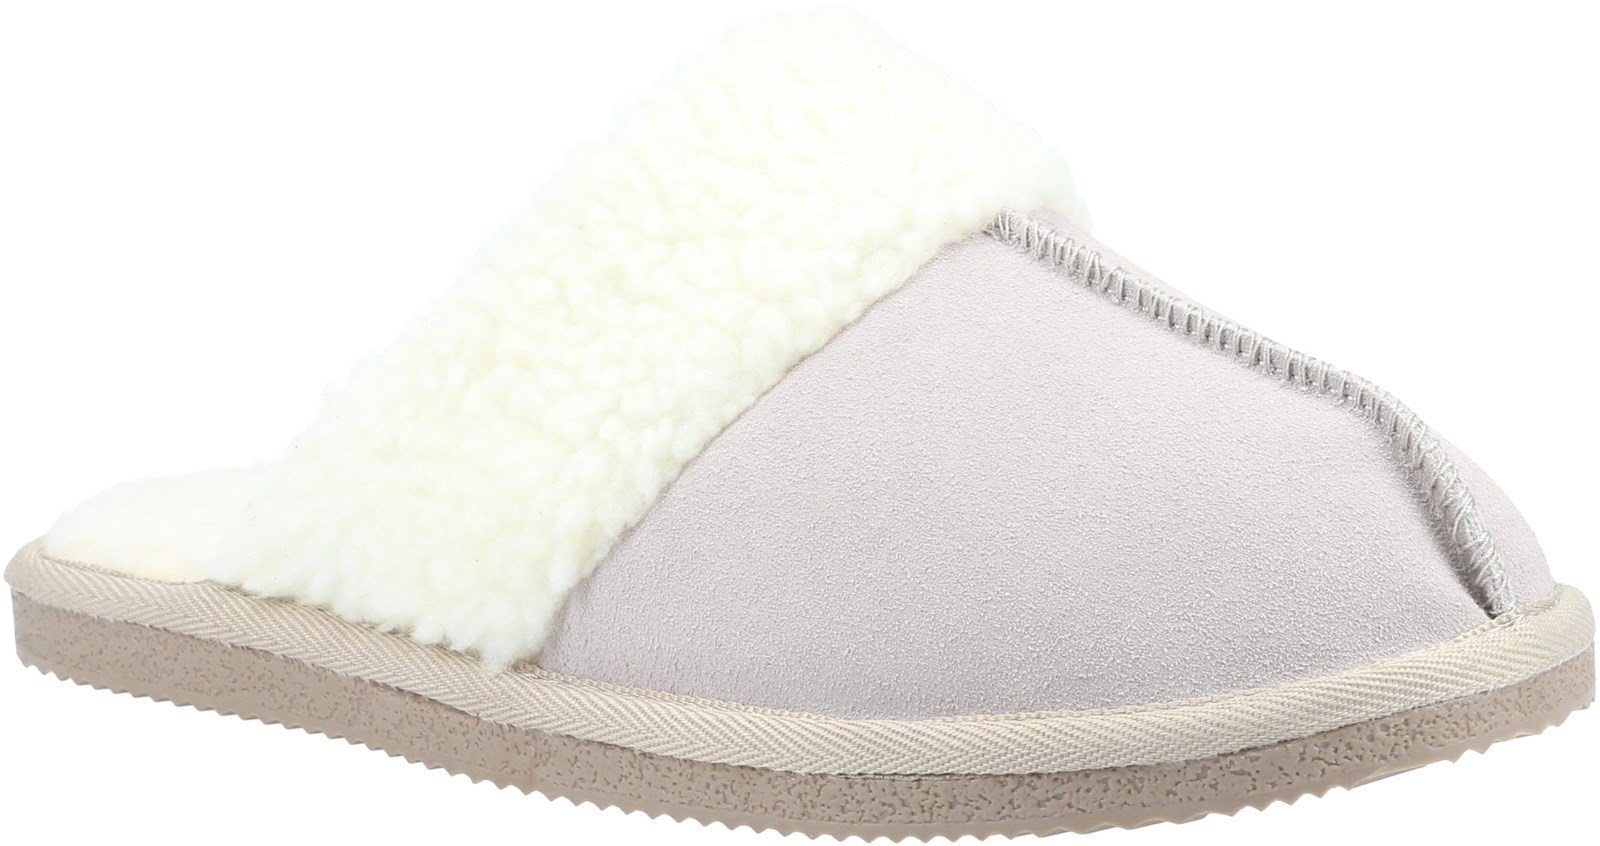 Hush Puppies Women's Arianna Mule Slippers Various Colours 31183 - Beige 3